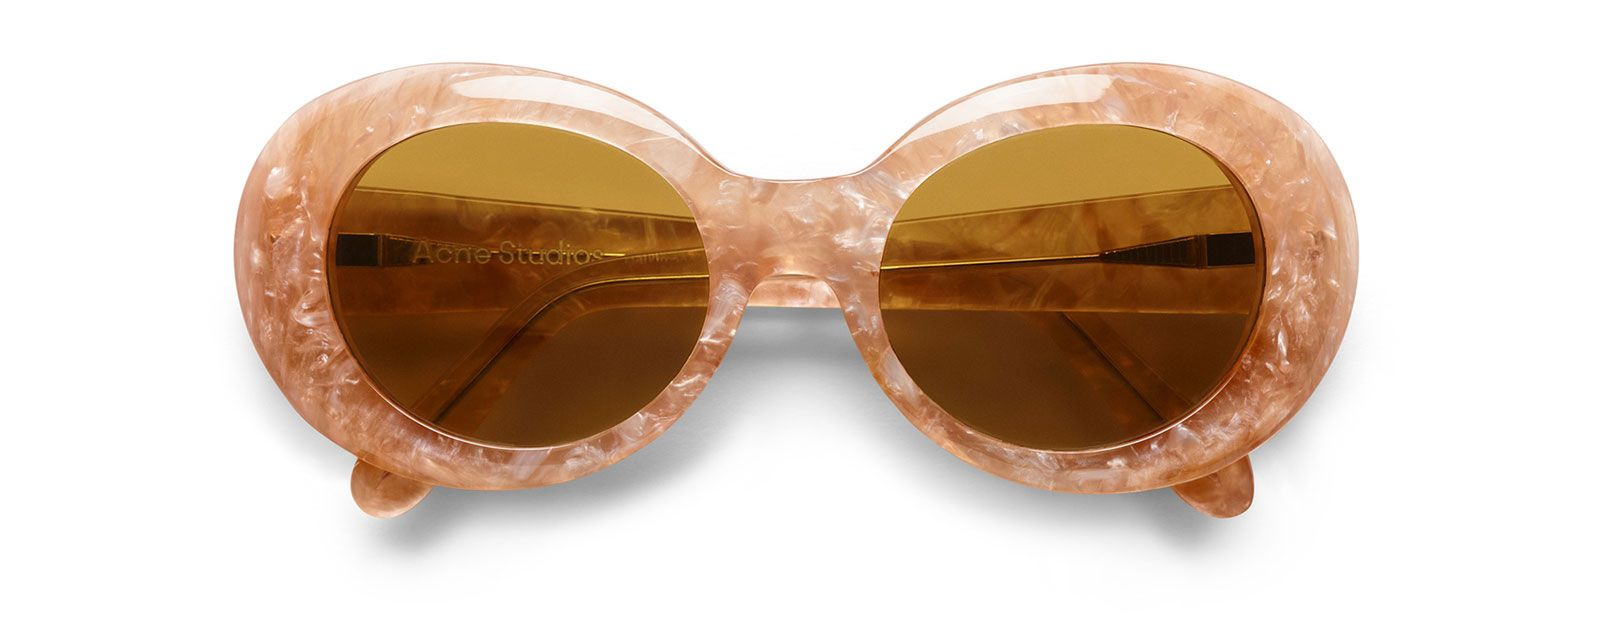 36b5fe10e5 Acne Studios - Eyewear Shop Ready to Wear